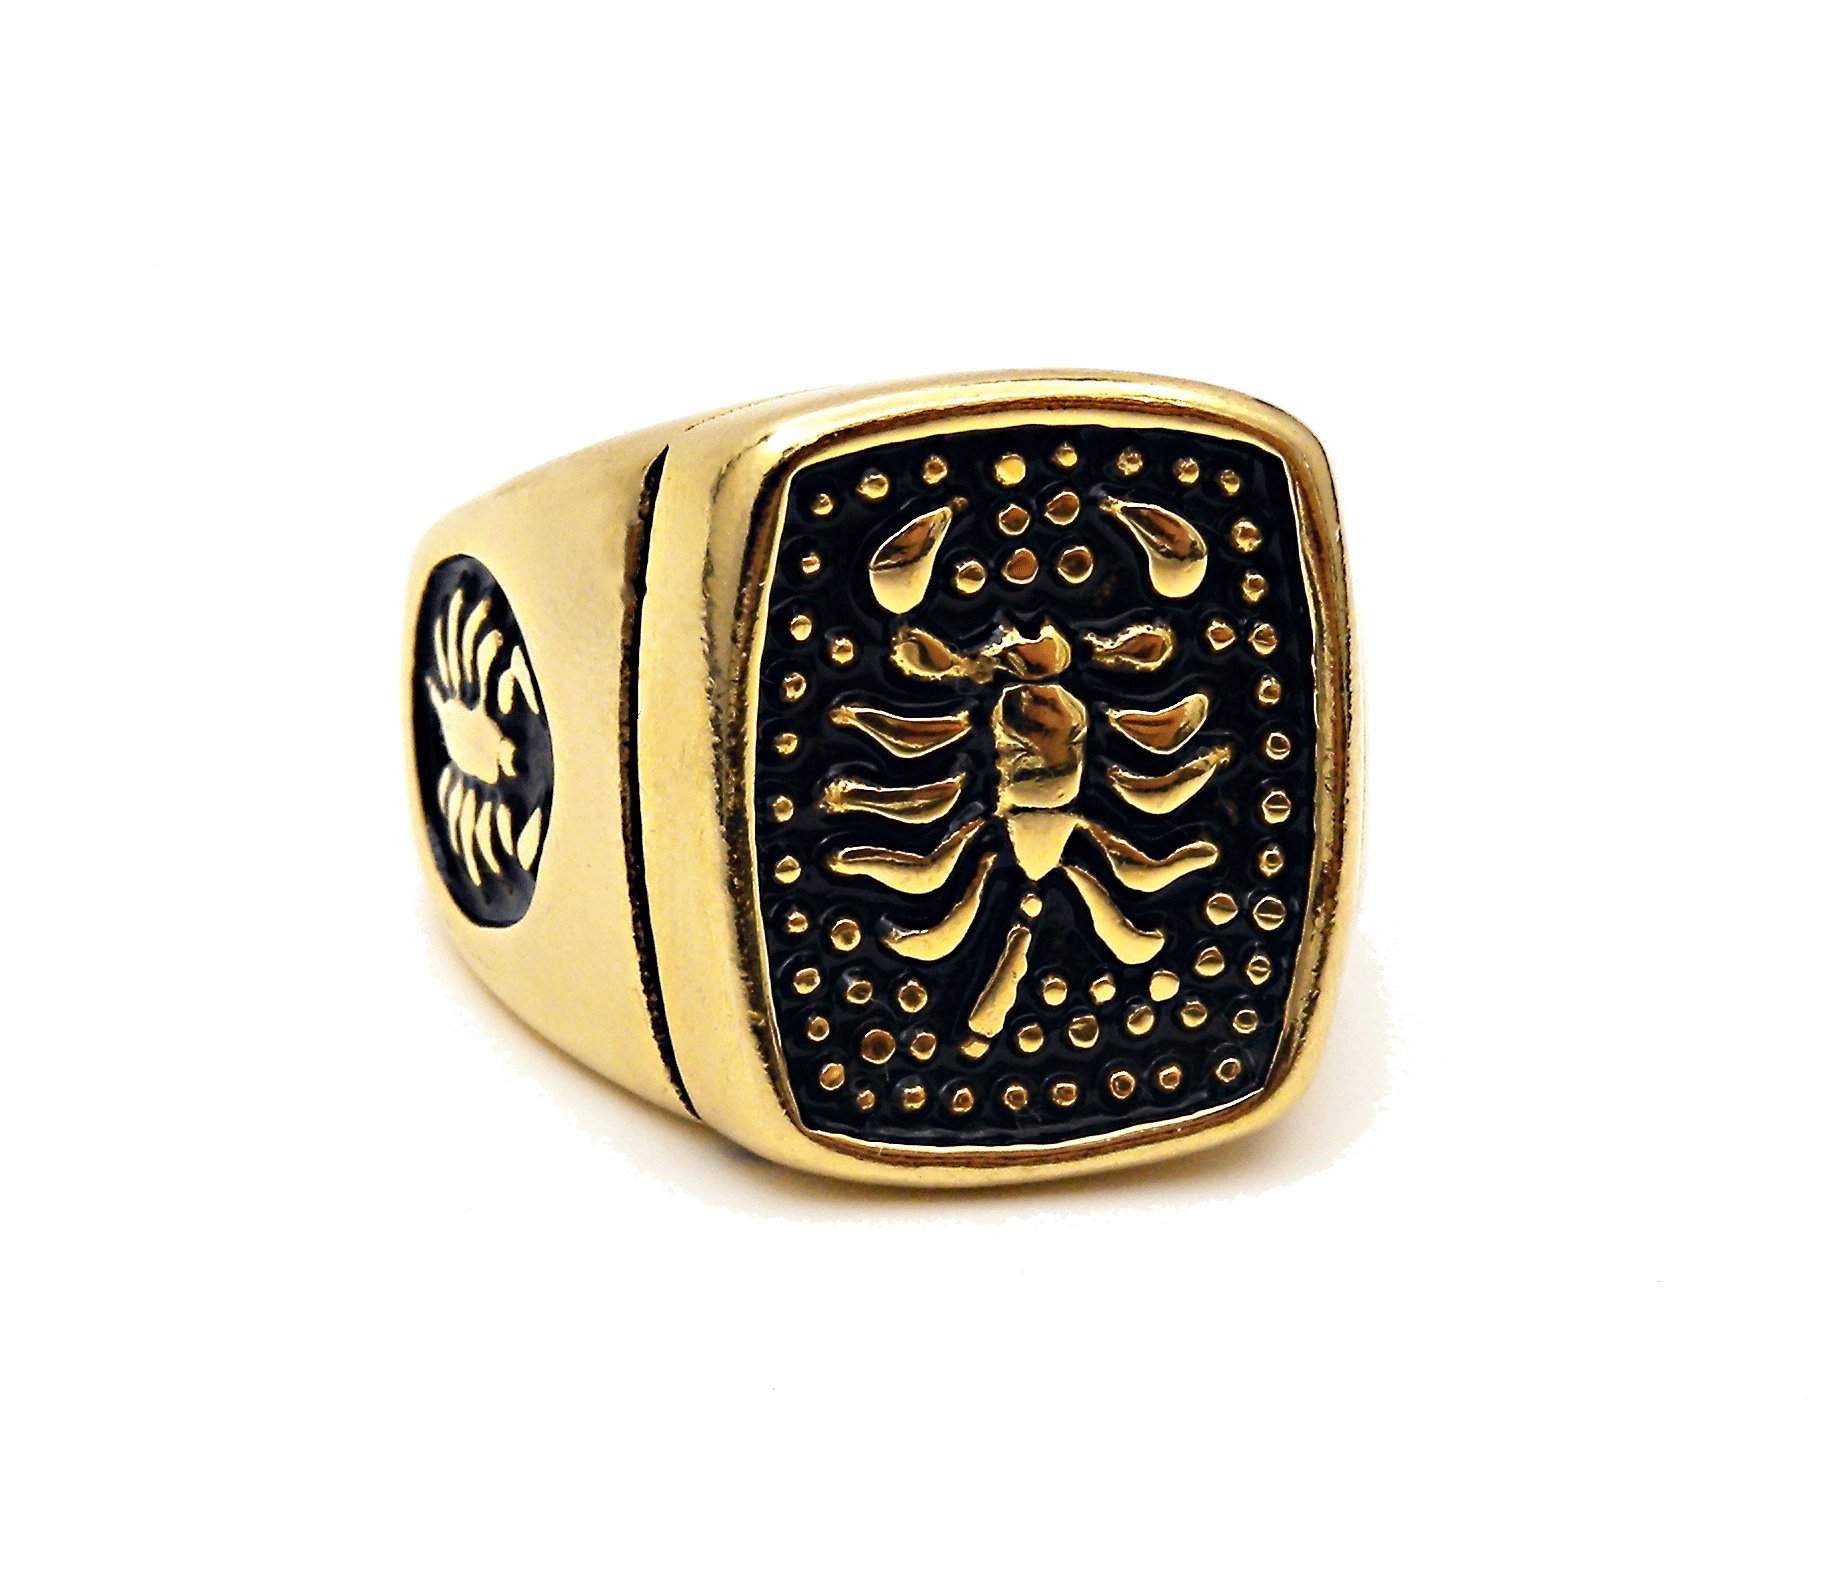 Charlotte Men's Stainless Steel Gothic Scorpion Ring Black Gold sizes 8-12